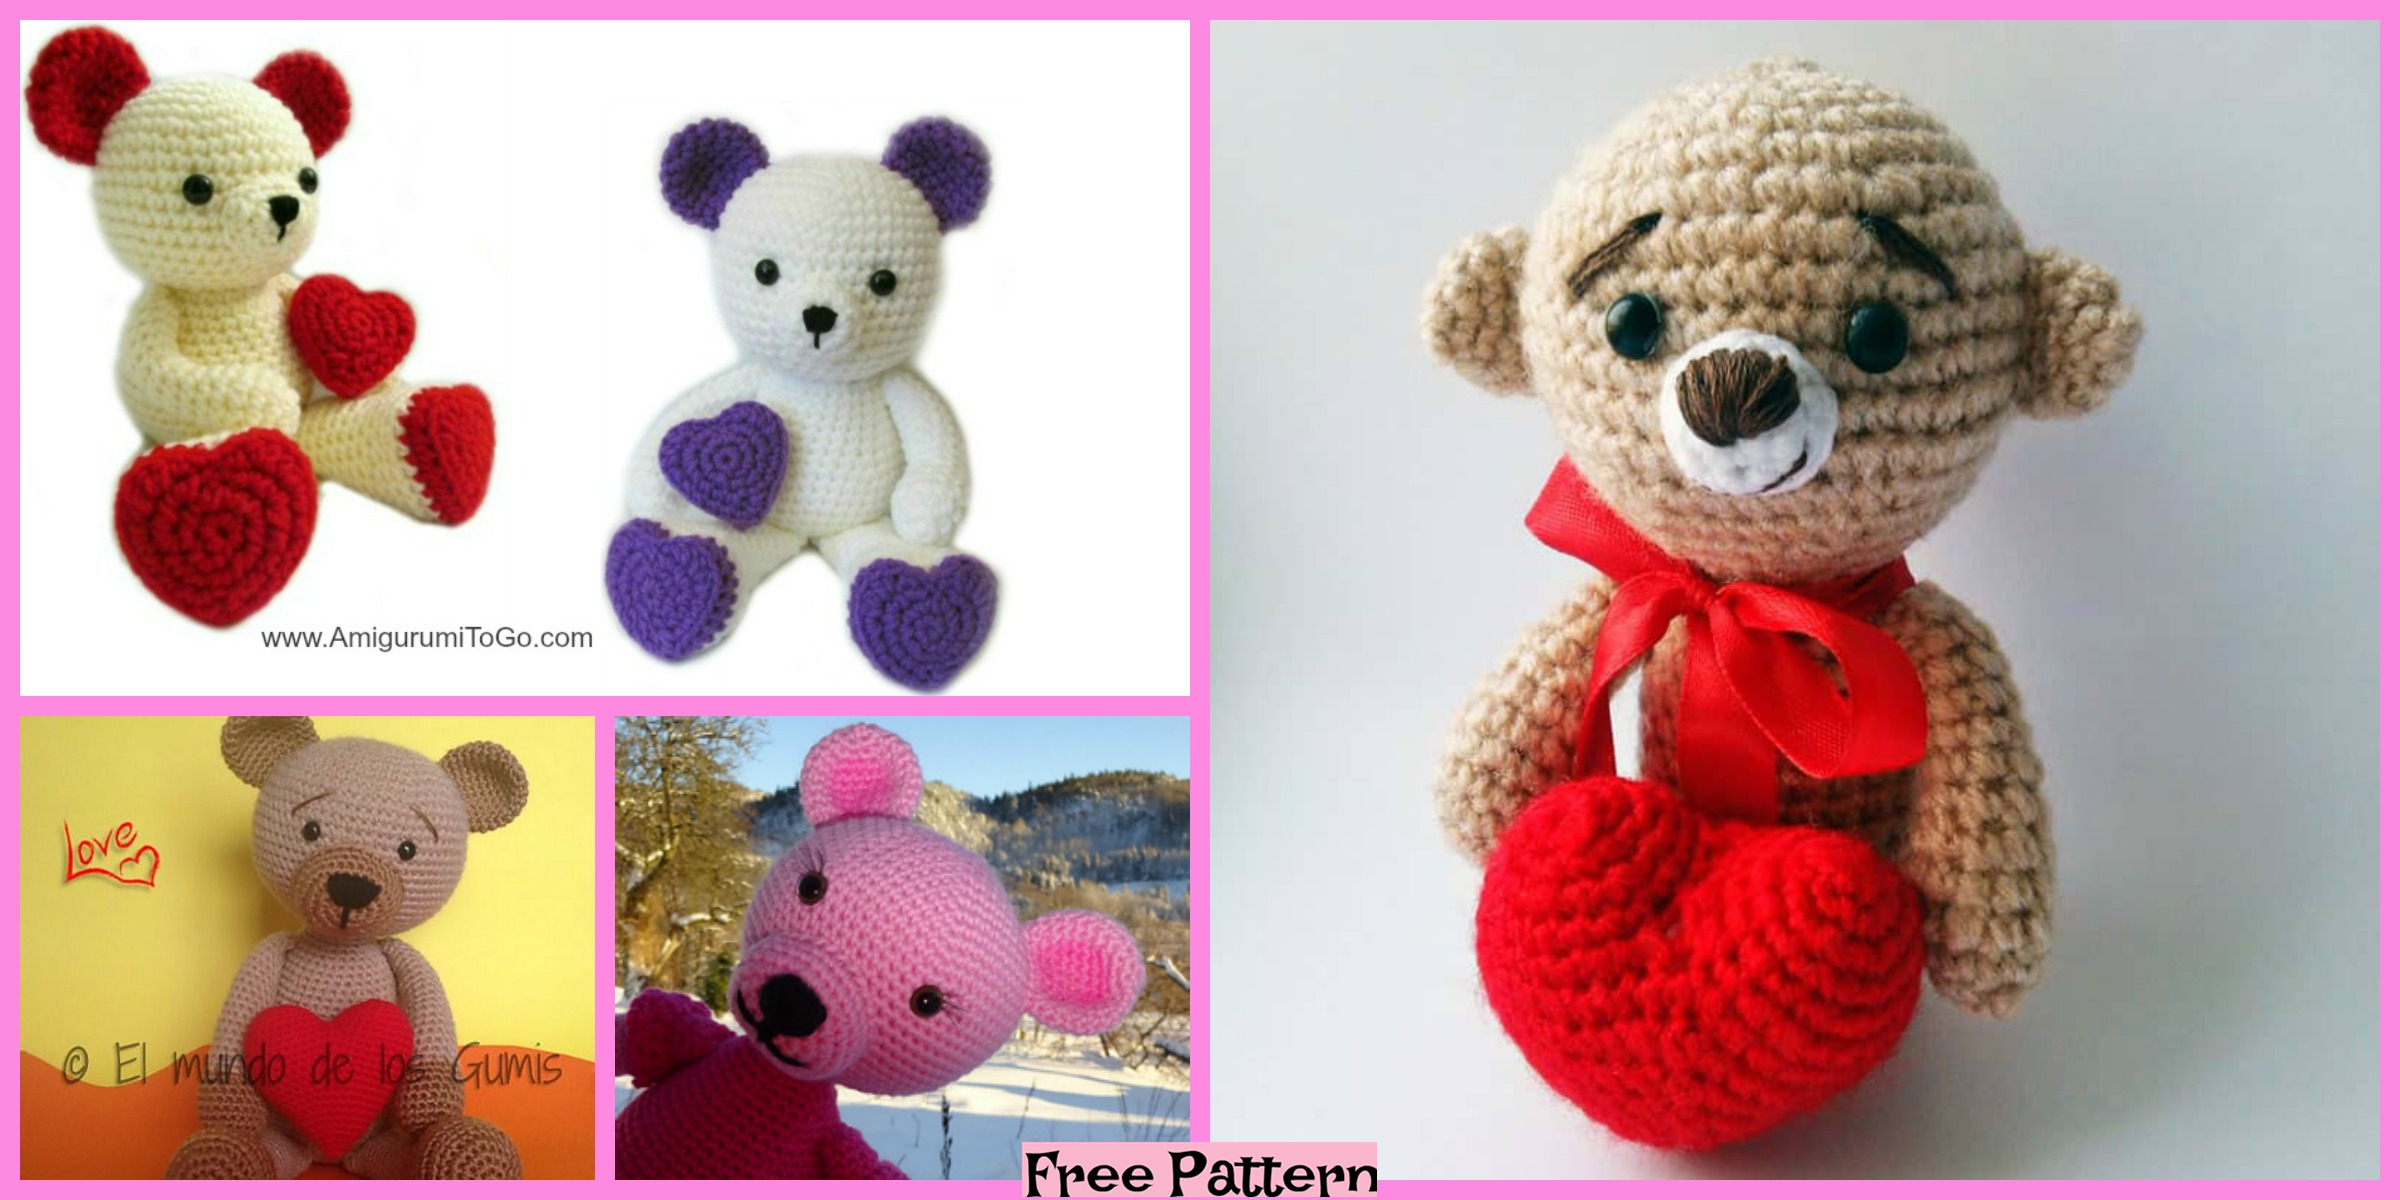 Crochet Valentine Teddy Bears – Free Patterns